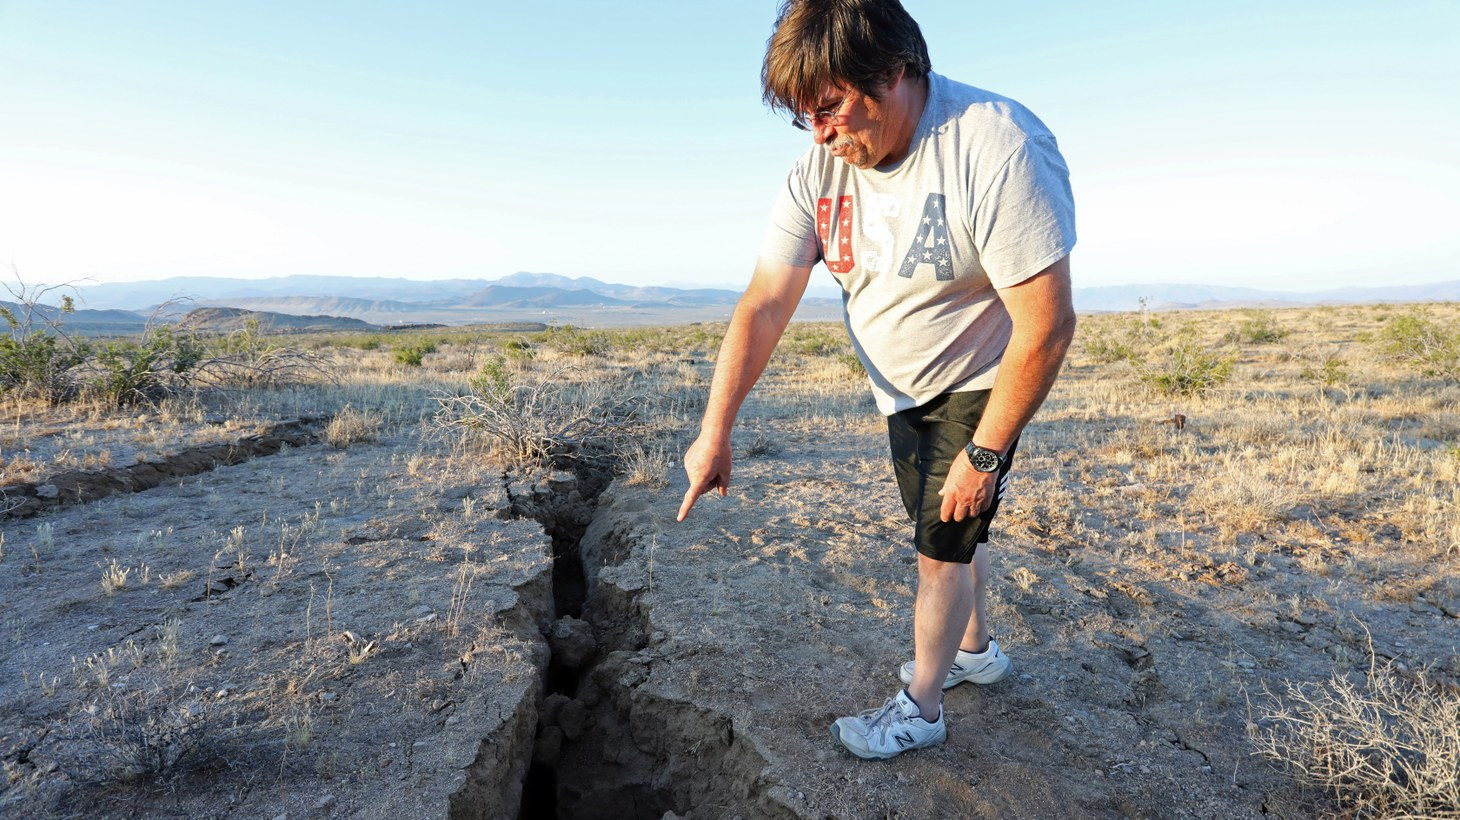 A man looks into a fissure that opened in the desert during a powerful earthquake that struck Southern California, near the city of Ridgecrest, California, U.S., July 4, 2019.